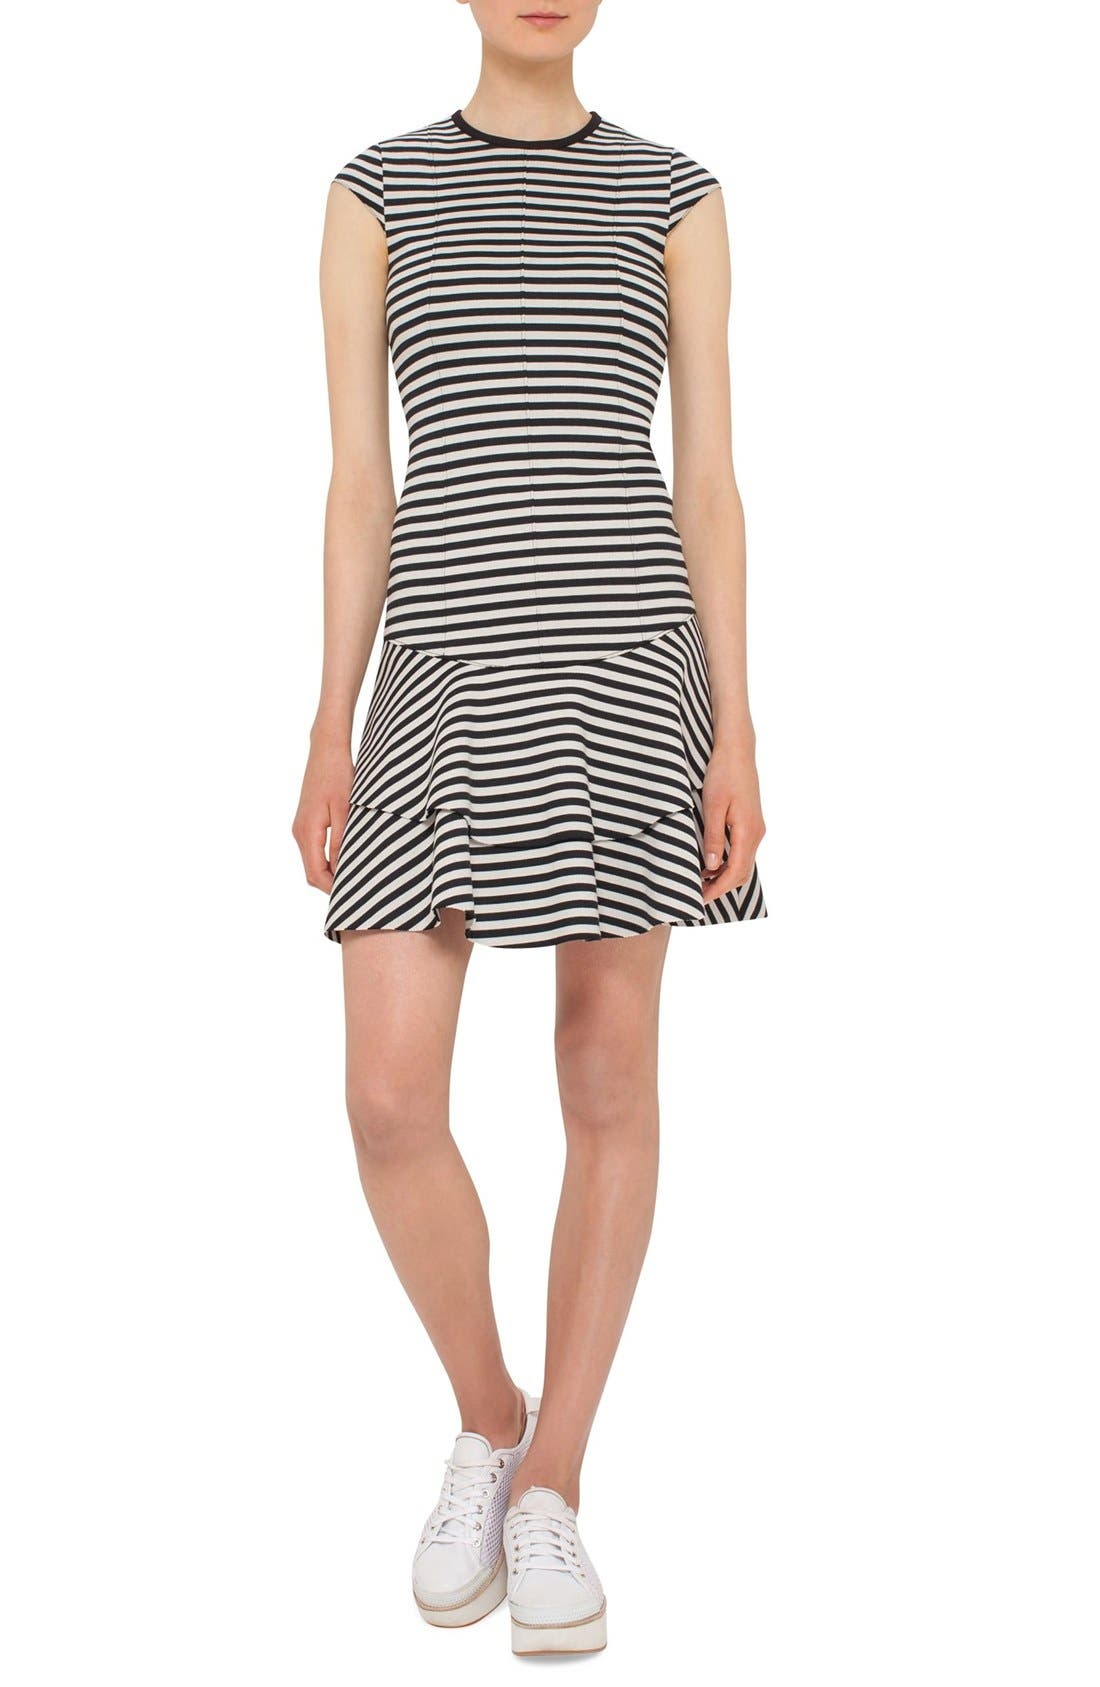 AKRIS PUNTO Stripe Flounce Dress